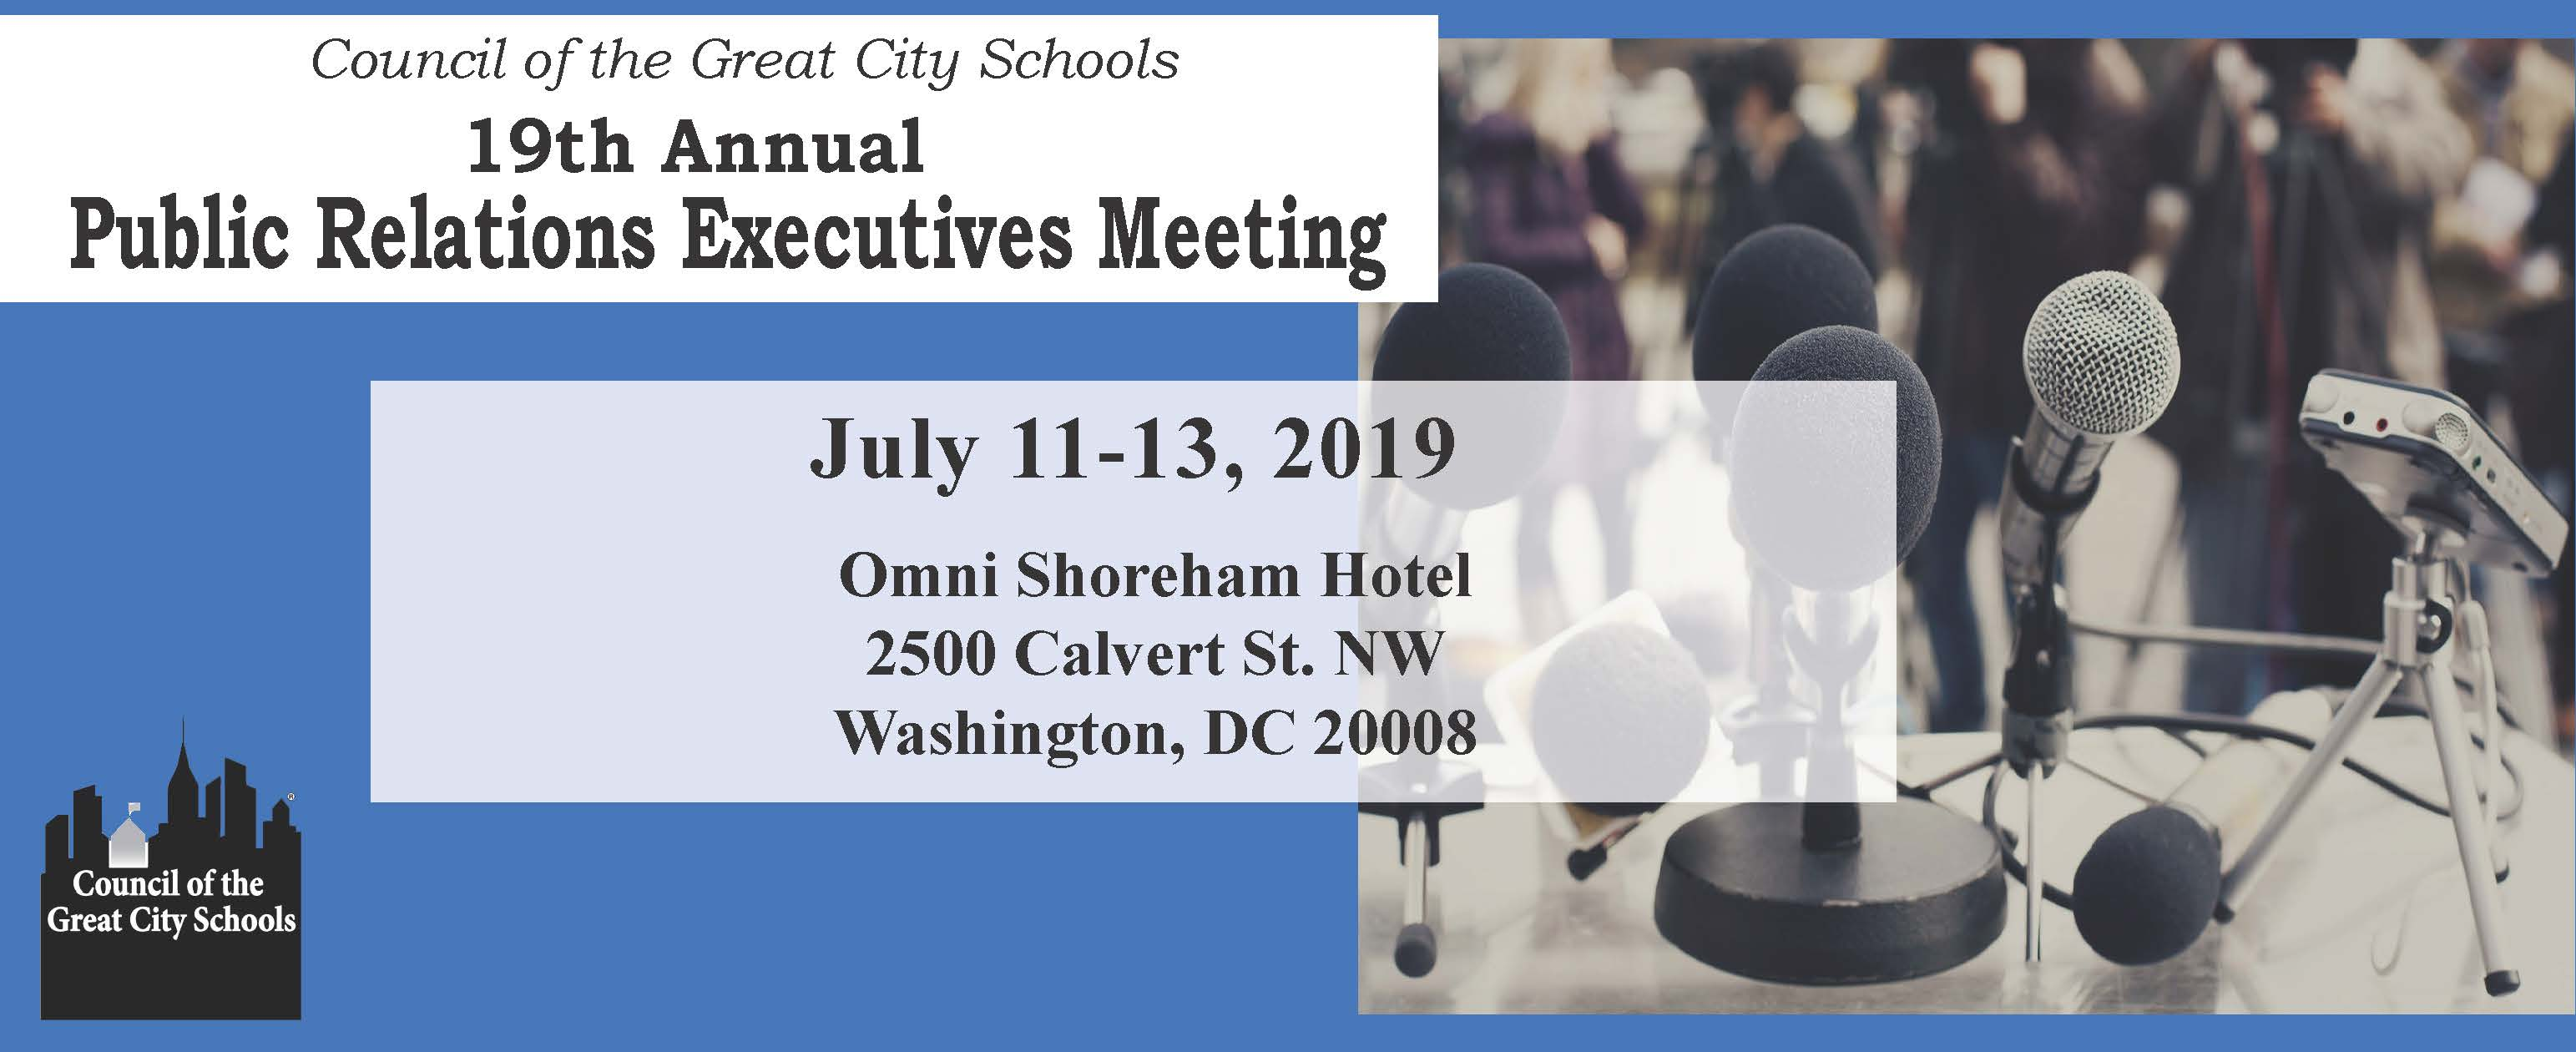 19th Annual Public Relations Executives Meeting